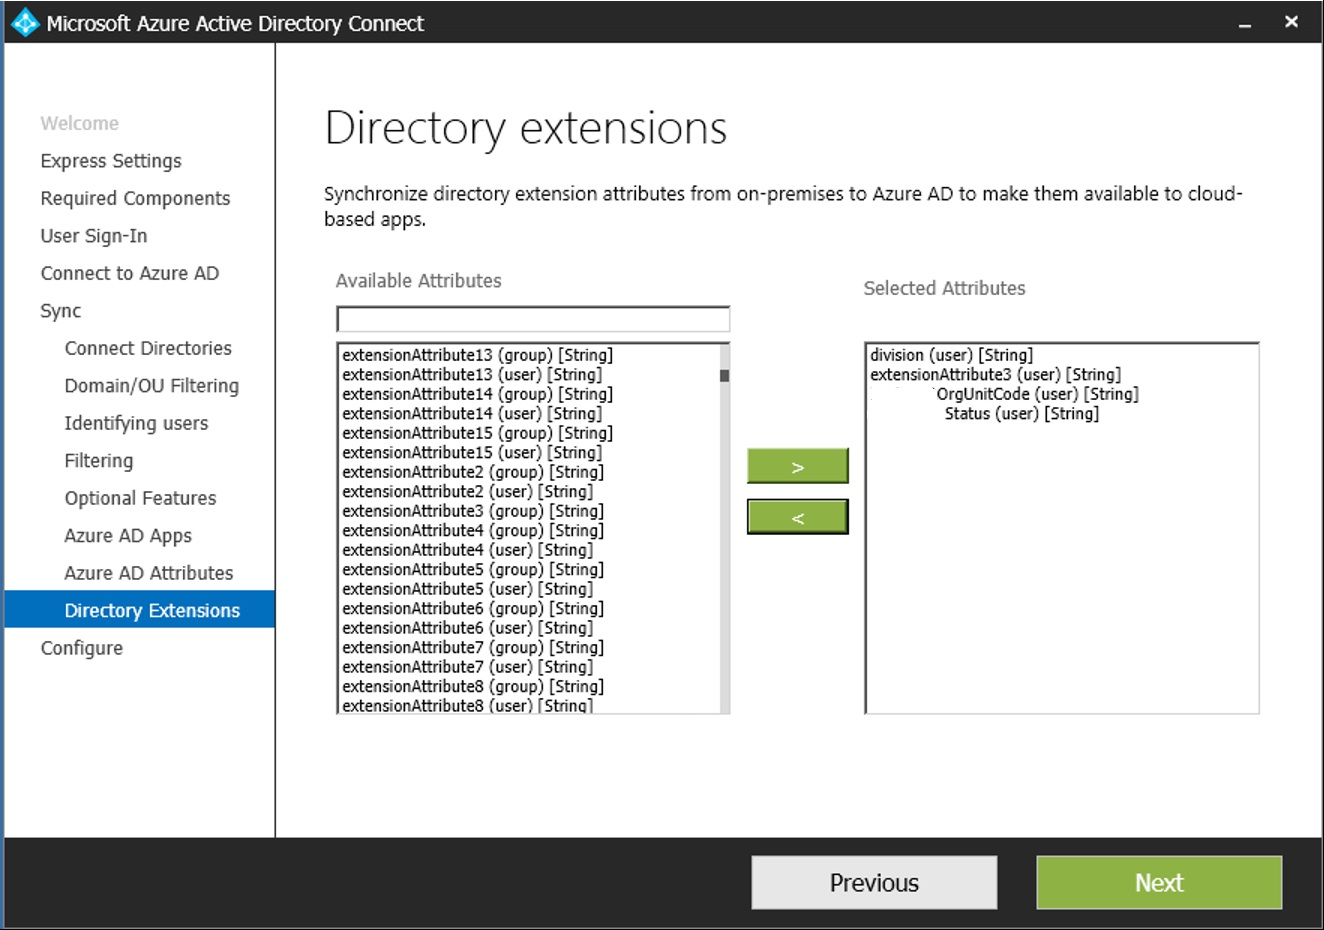 Office 365 Archives - Page 15 of 24 - Kloud Blog